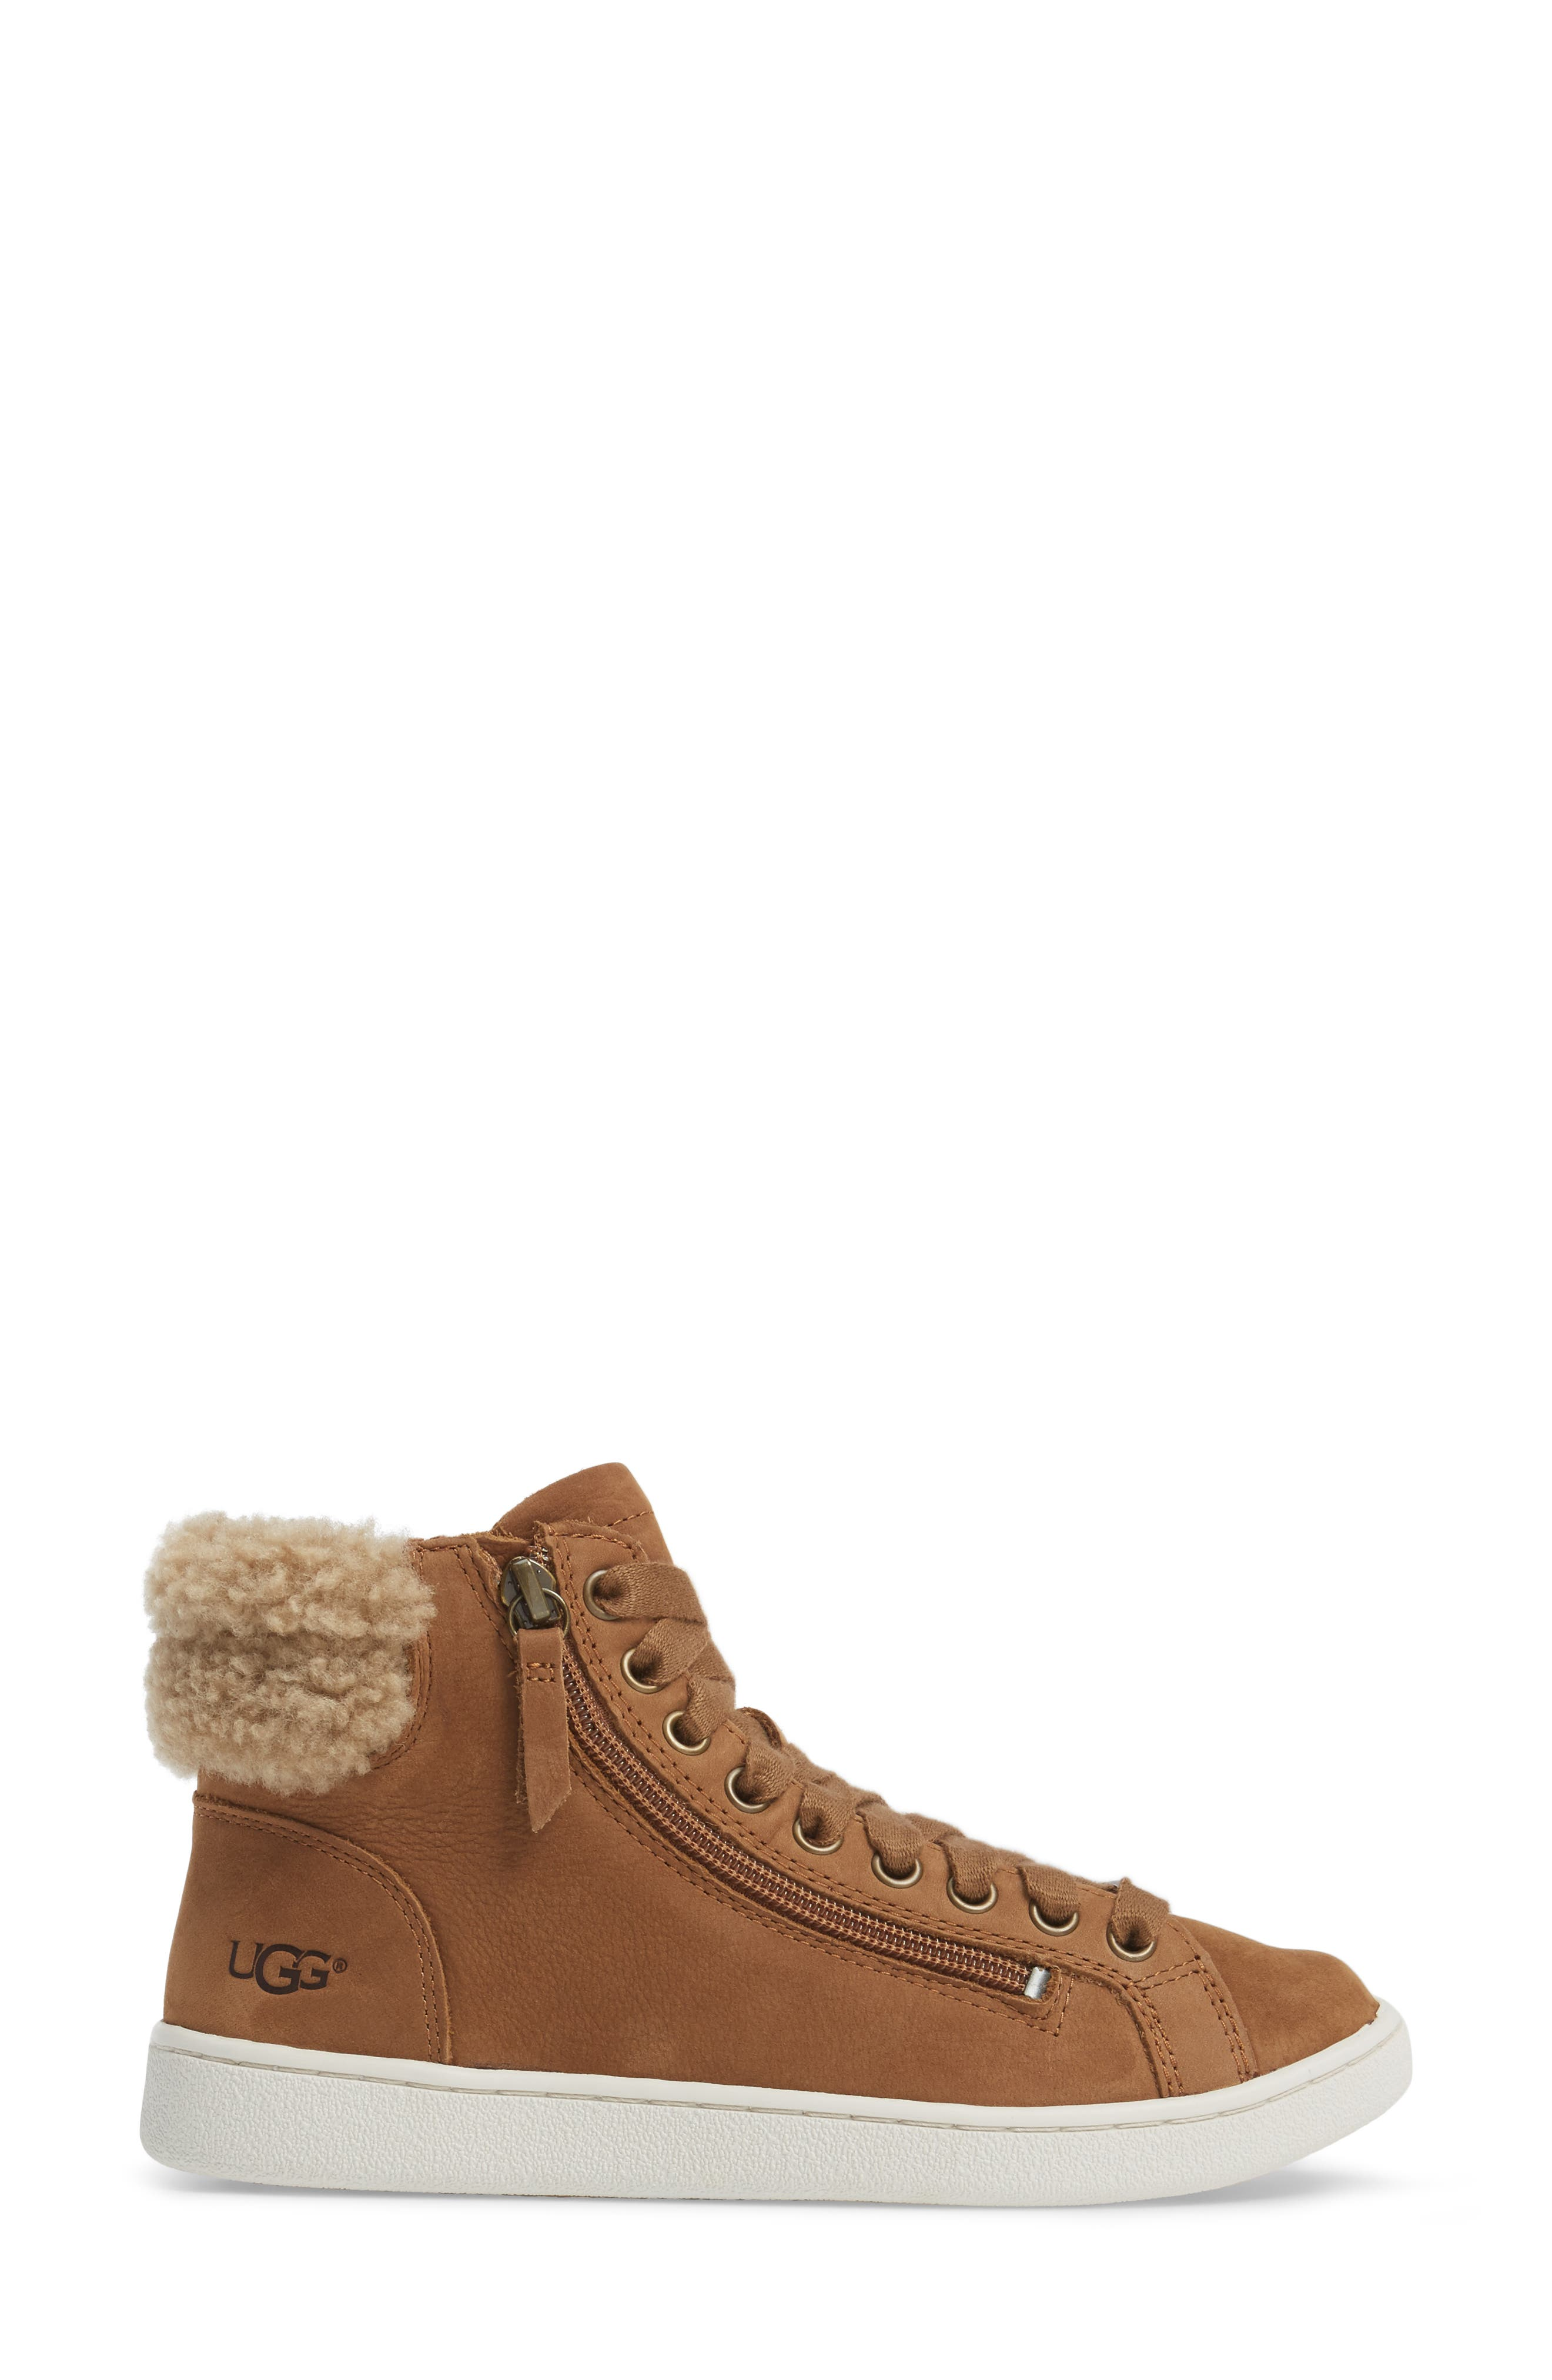 Olive Genuine Shearling Cuff Sneaker,                             Alternate thumbnail 3, color,                             219